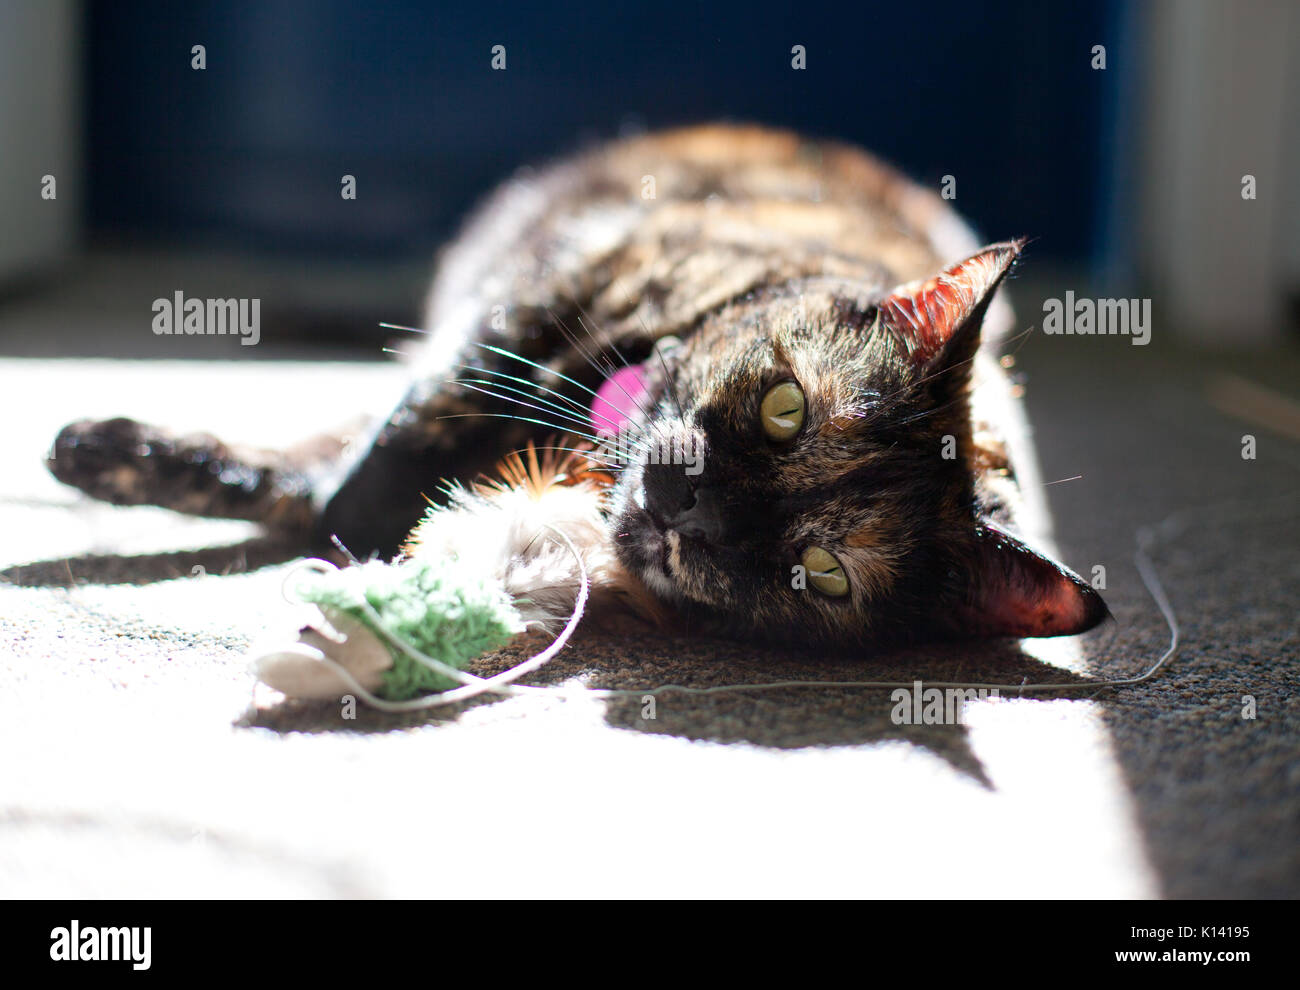 cute tortoiseshell cat rests in the sun, after playing with a small toy fish - Stock Image